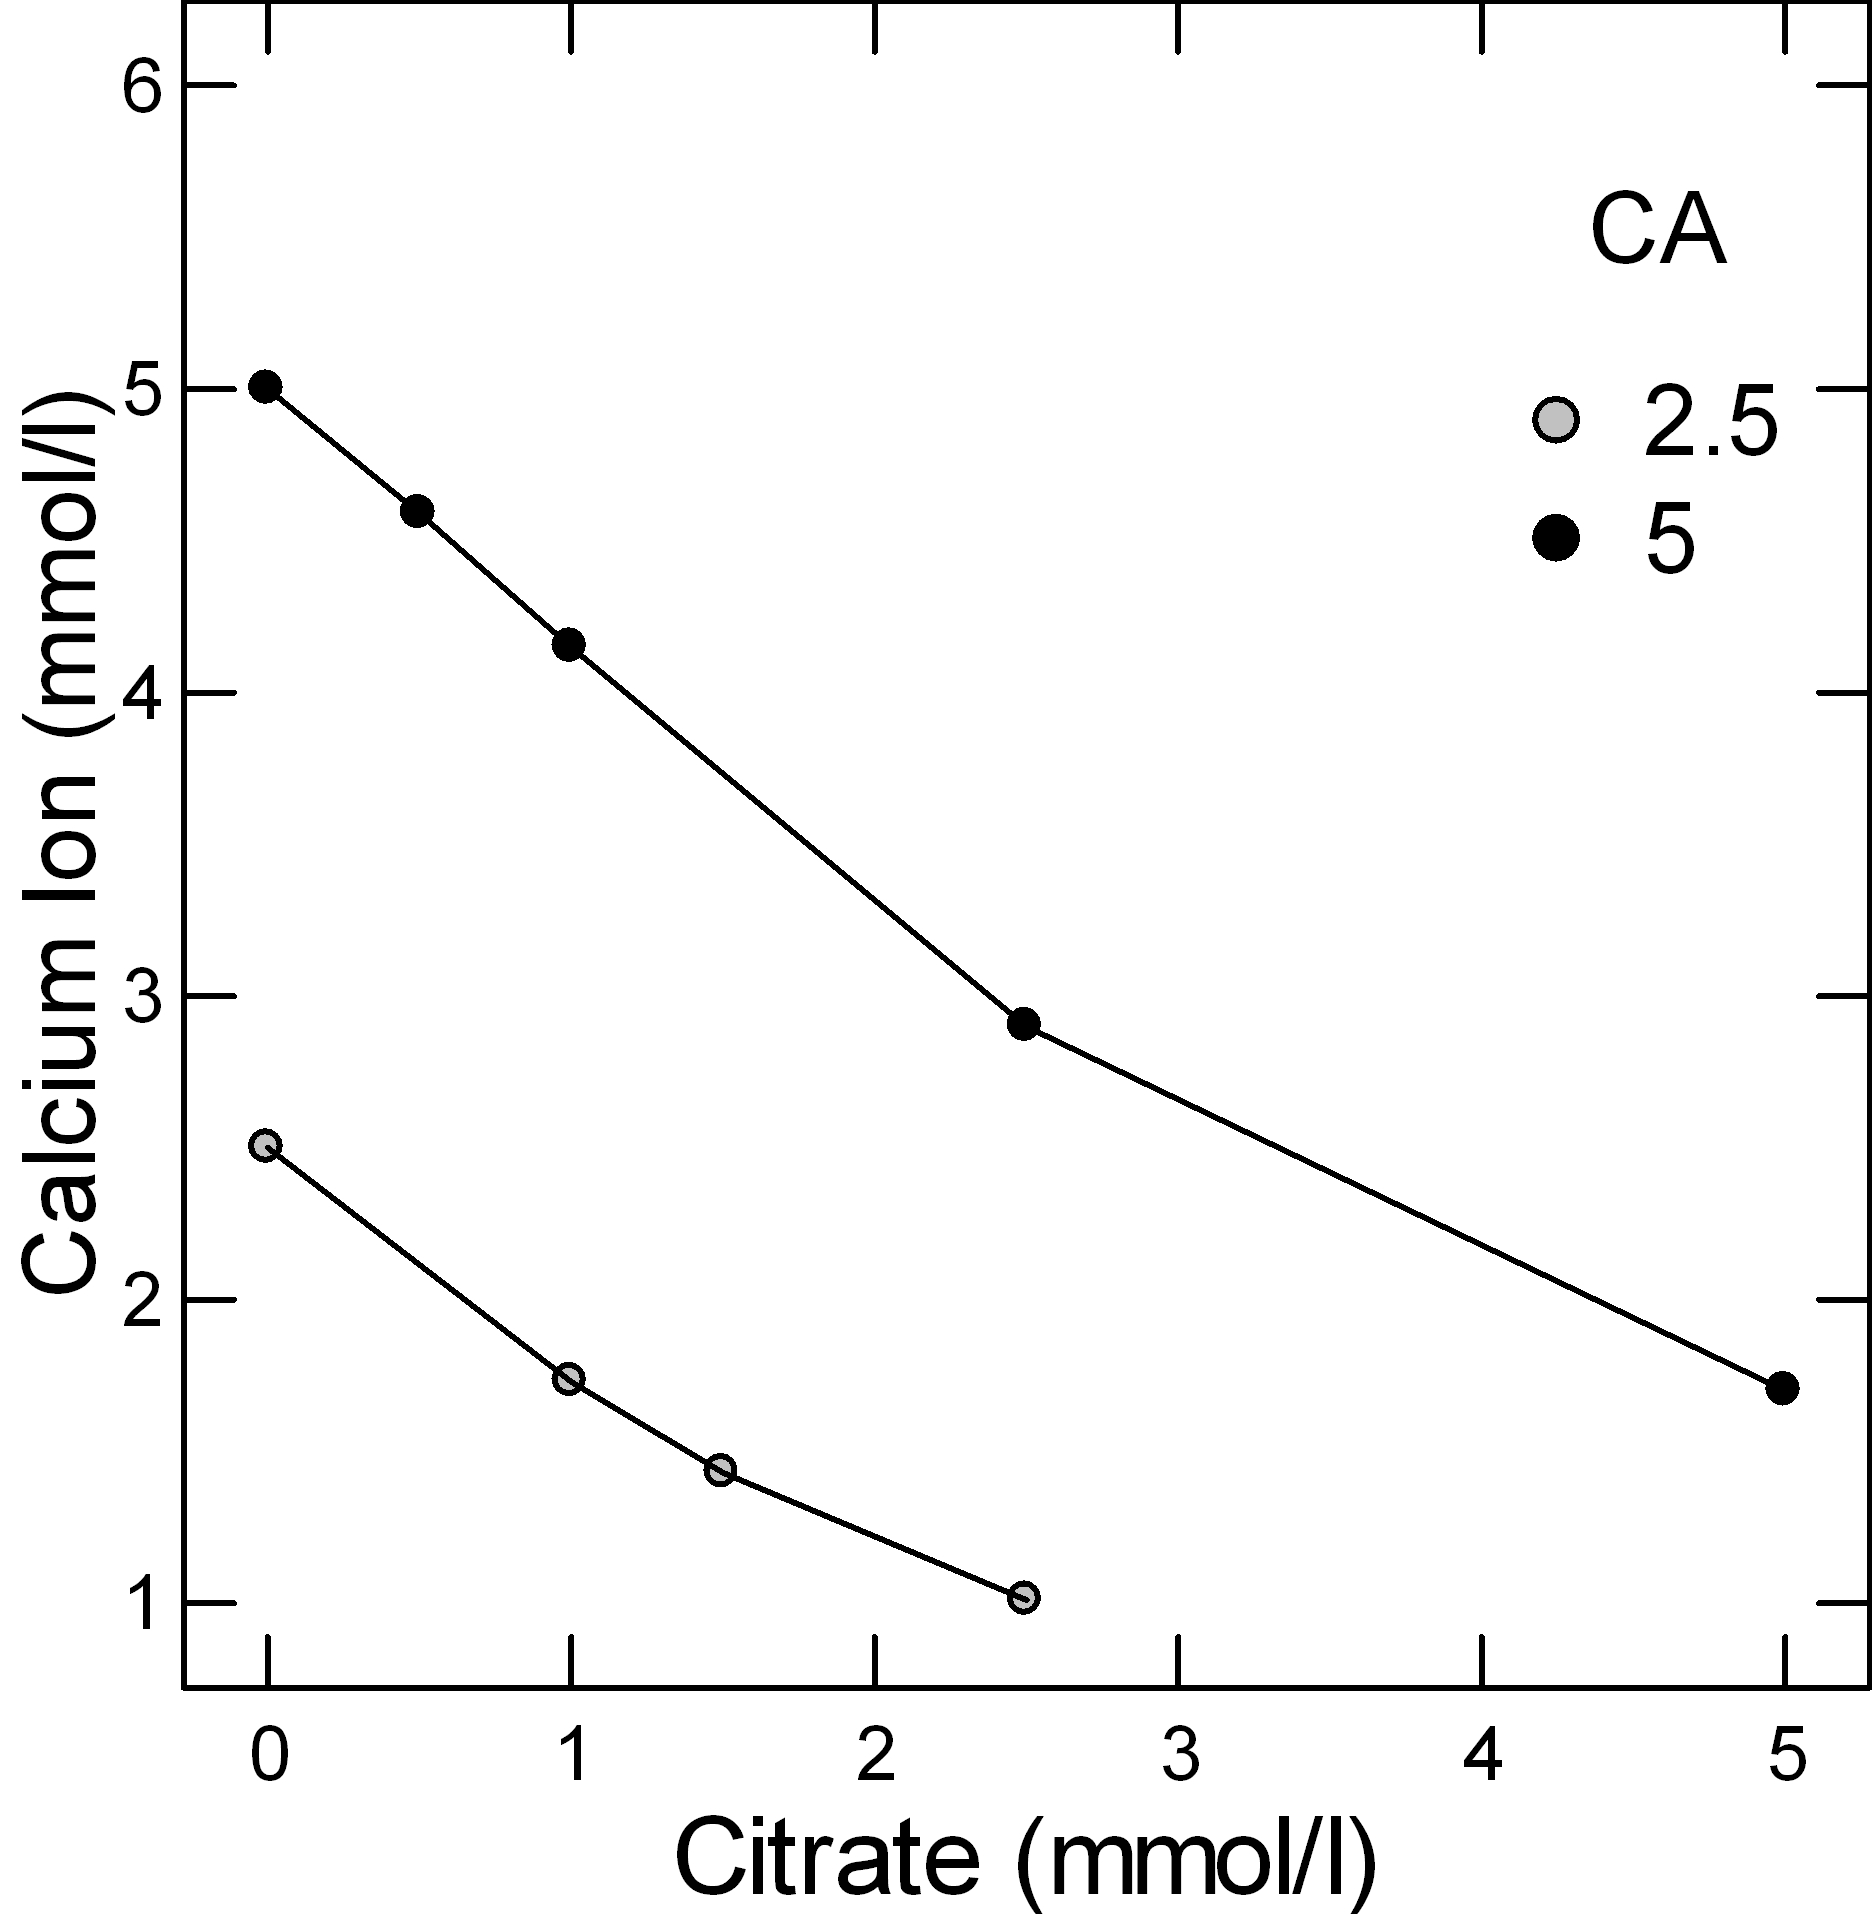 CALCIUM BINDING BY CITRATE | Kidney Stone Evaluation And